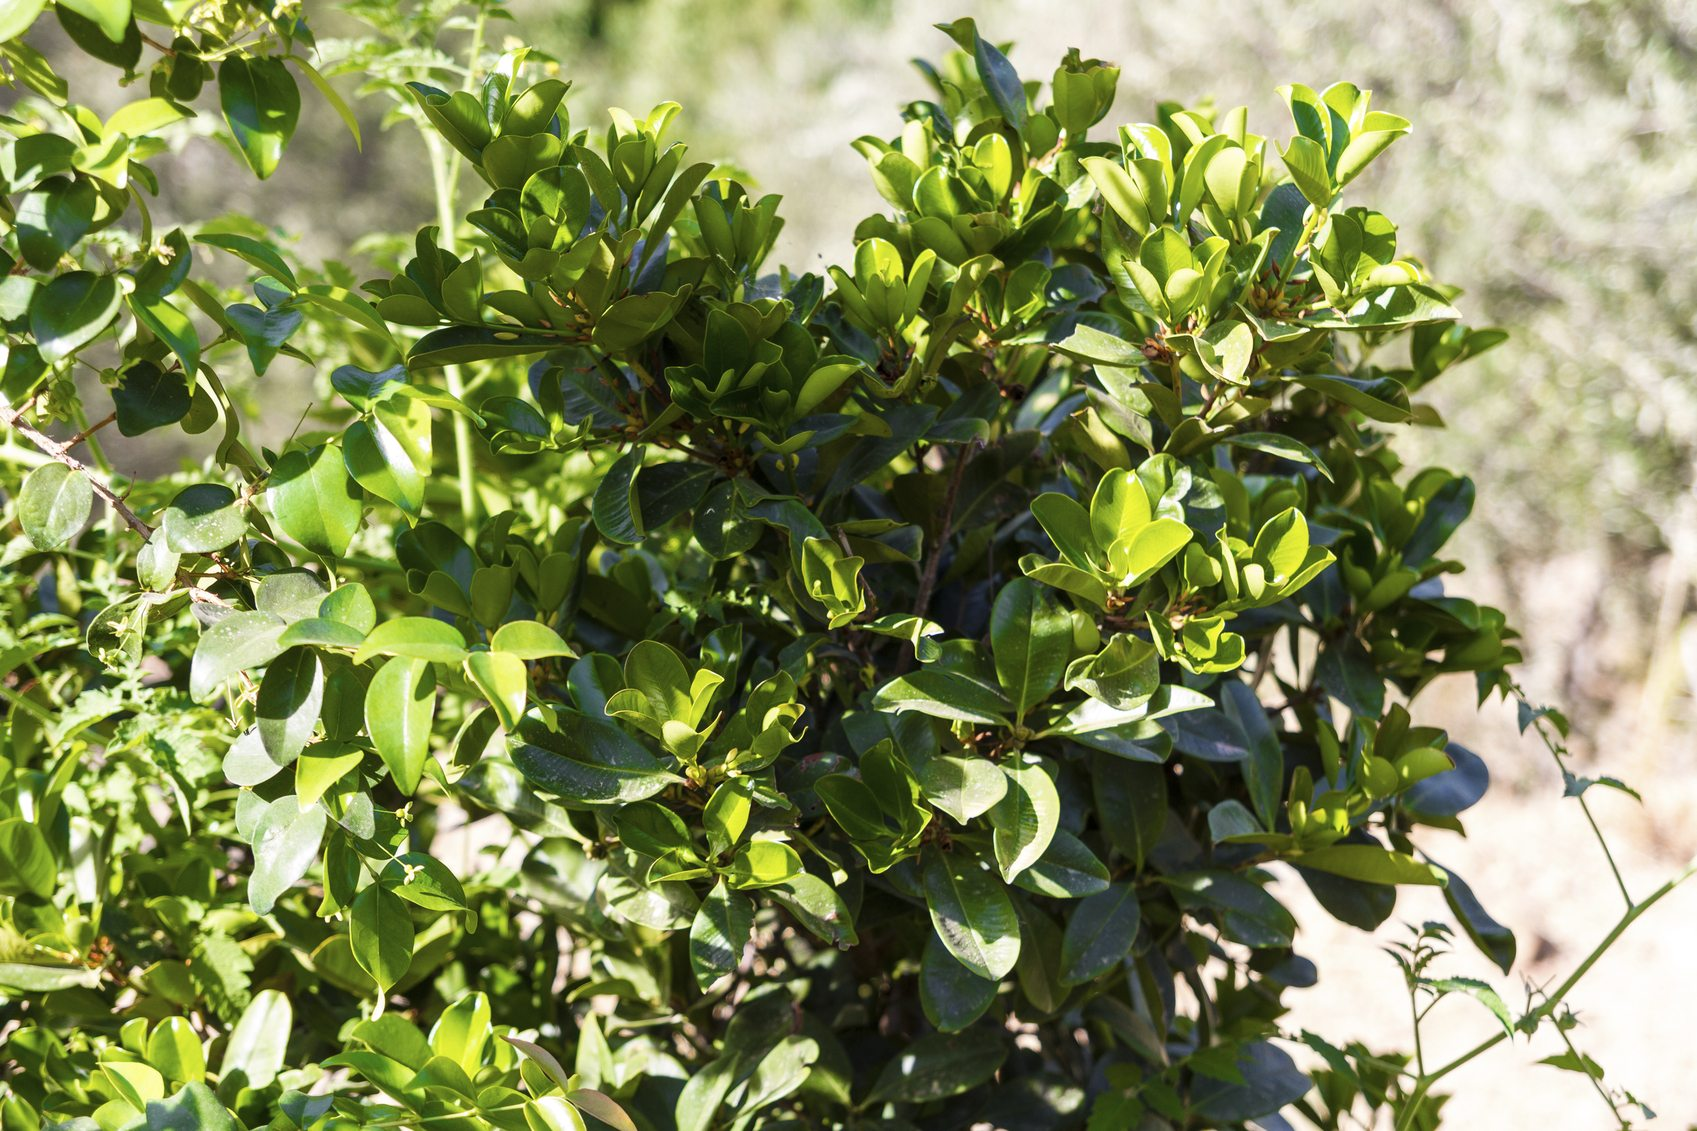 Eugenia Hedge Spacing Growing Eugenia Shrubs For Privacy Hedge